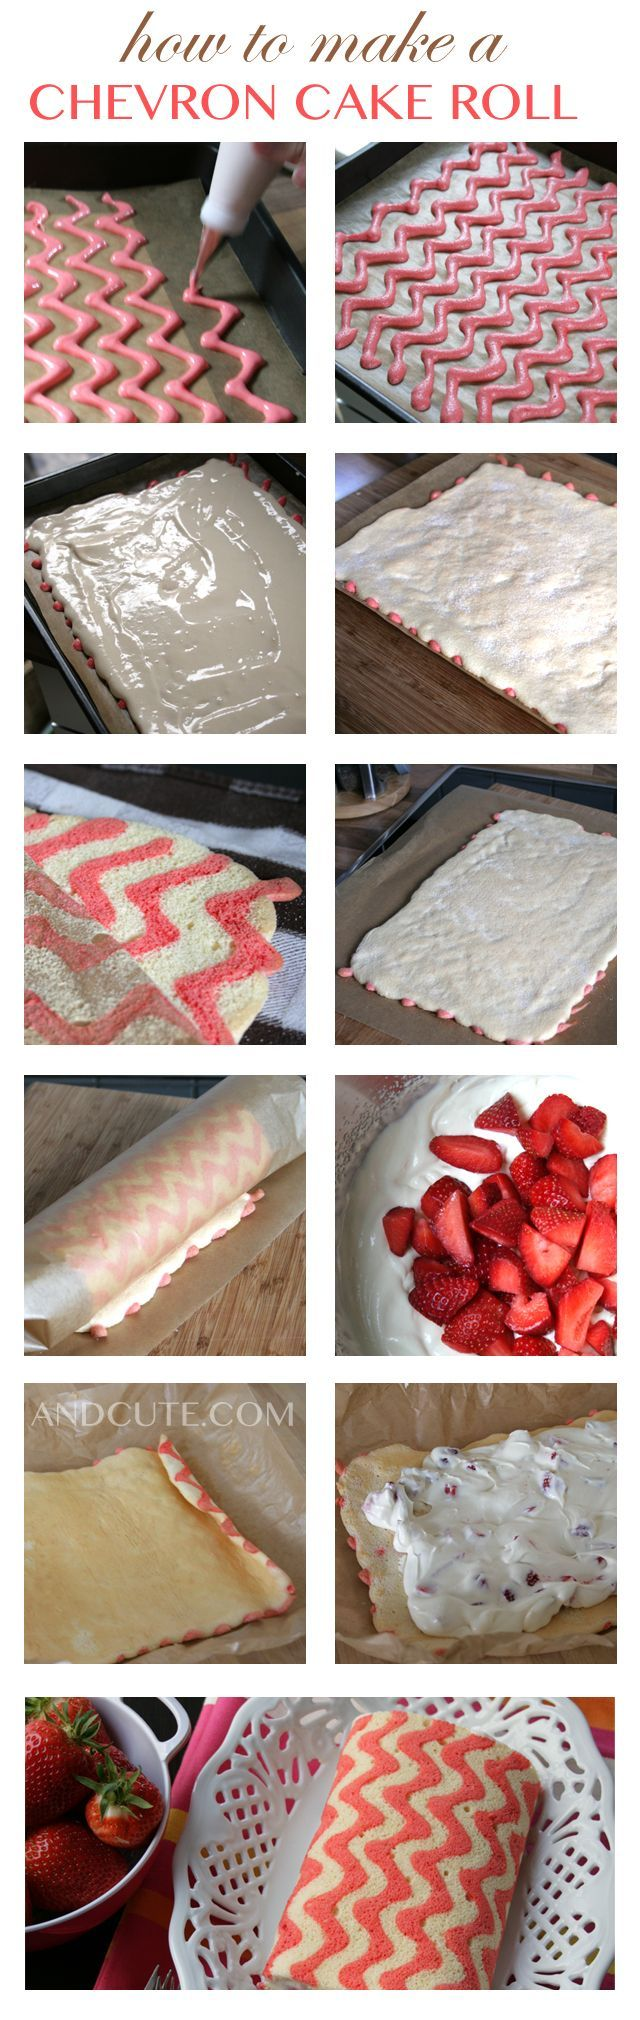 4 egg whites 4 egg yolks 70g fine sugar 10g sugar 6g vanilla sugar (or 1/2 tsp. vanilla extract) 70g flour food color Filling 1 and 1/2 cups white chocolate (chopped) 1 cup heavy whipping cream 3/4 cup fresh strawberries (quartered